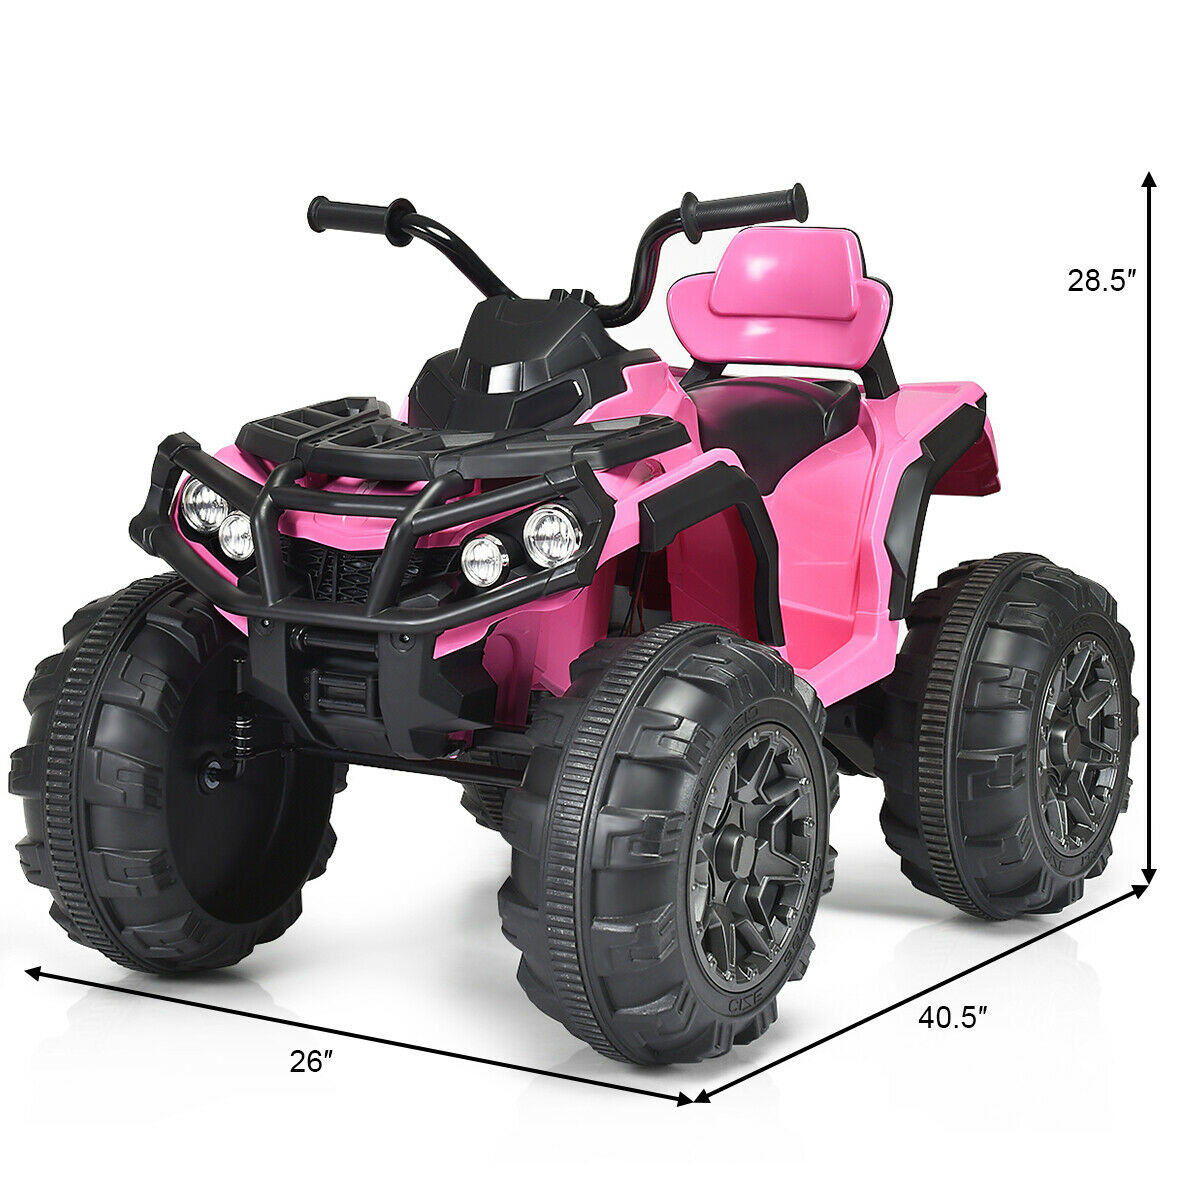 12v Led Quad Costway 12v High End Kids Atv Quad 4 Wheeler Ride On Car 2 Speed W Mp3 Led Lights